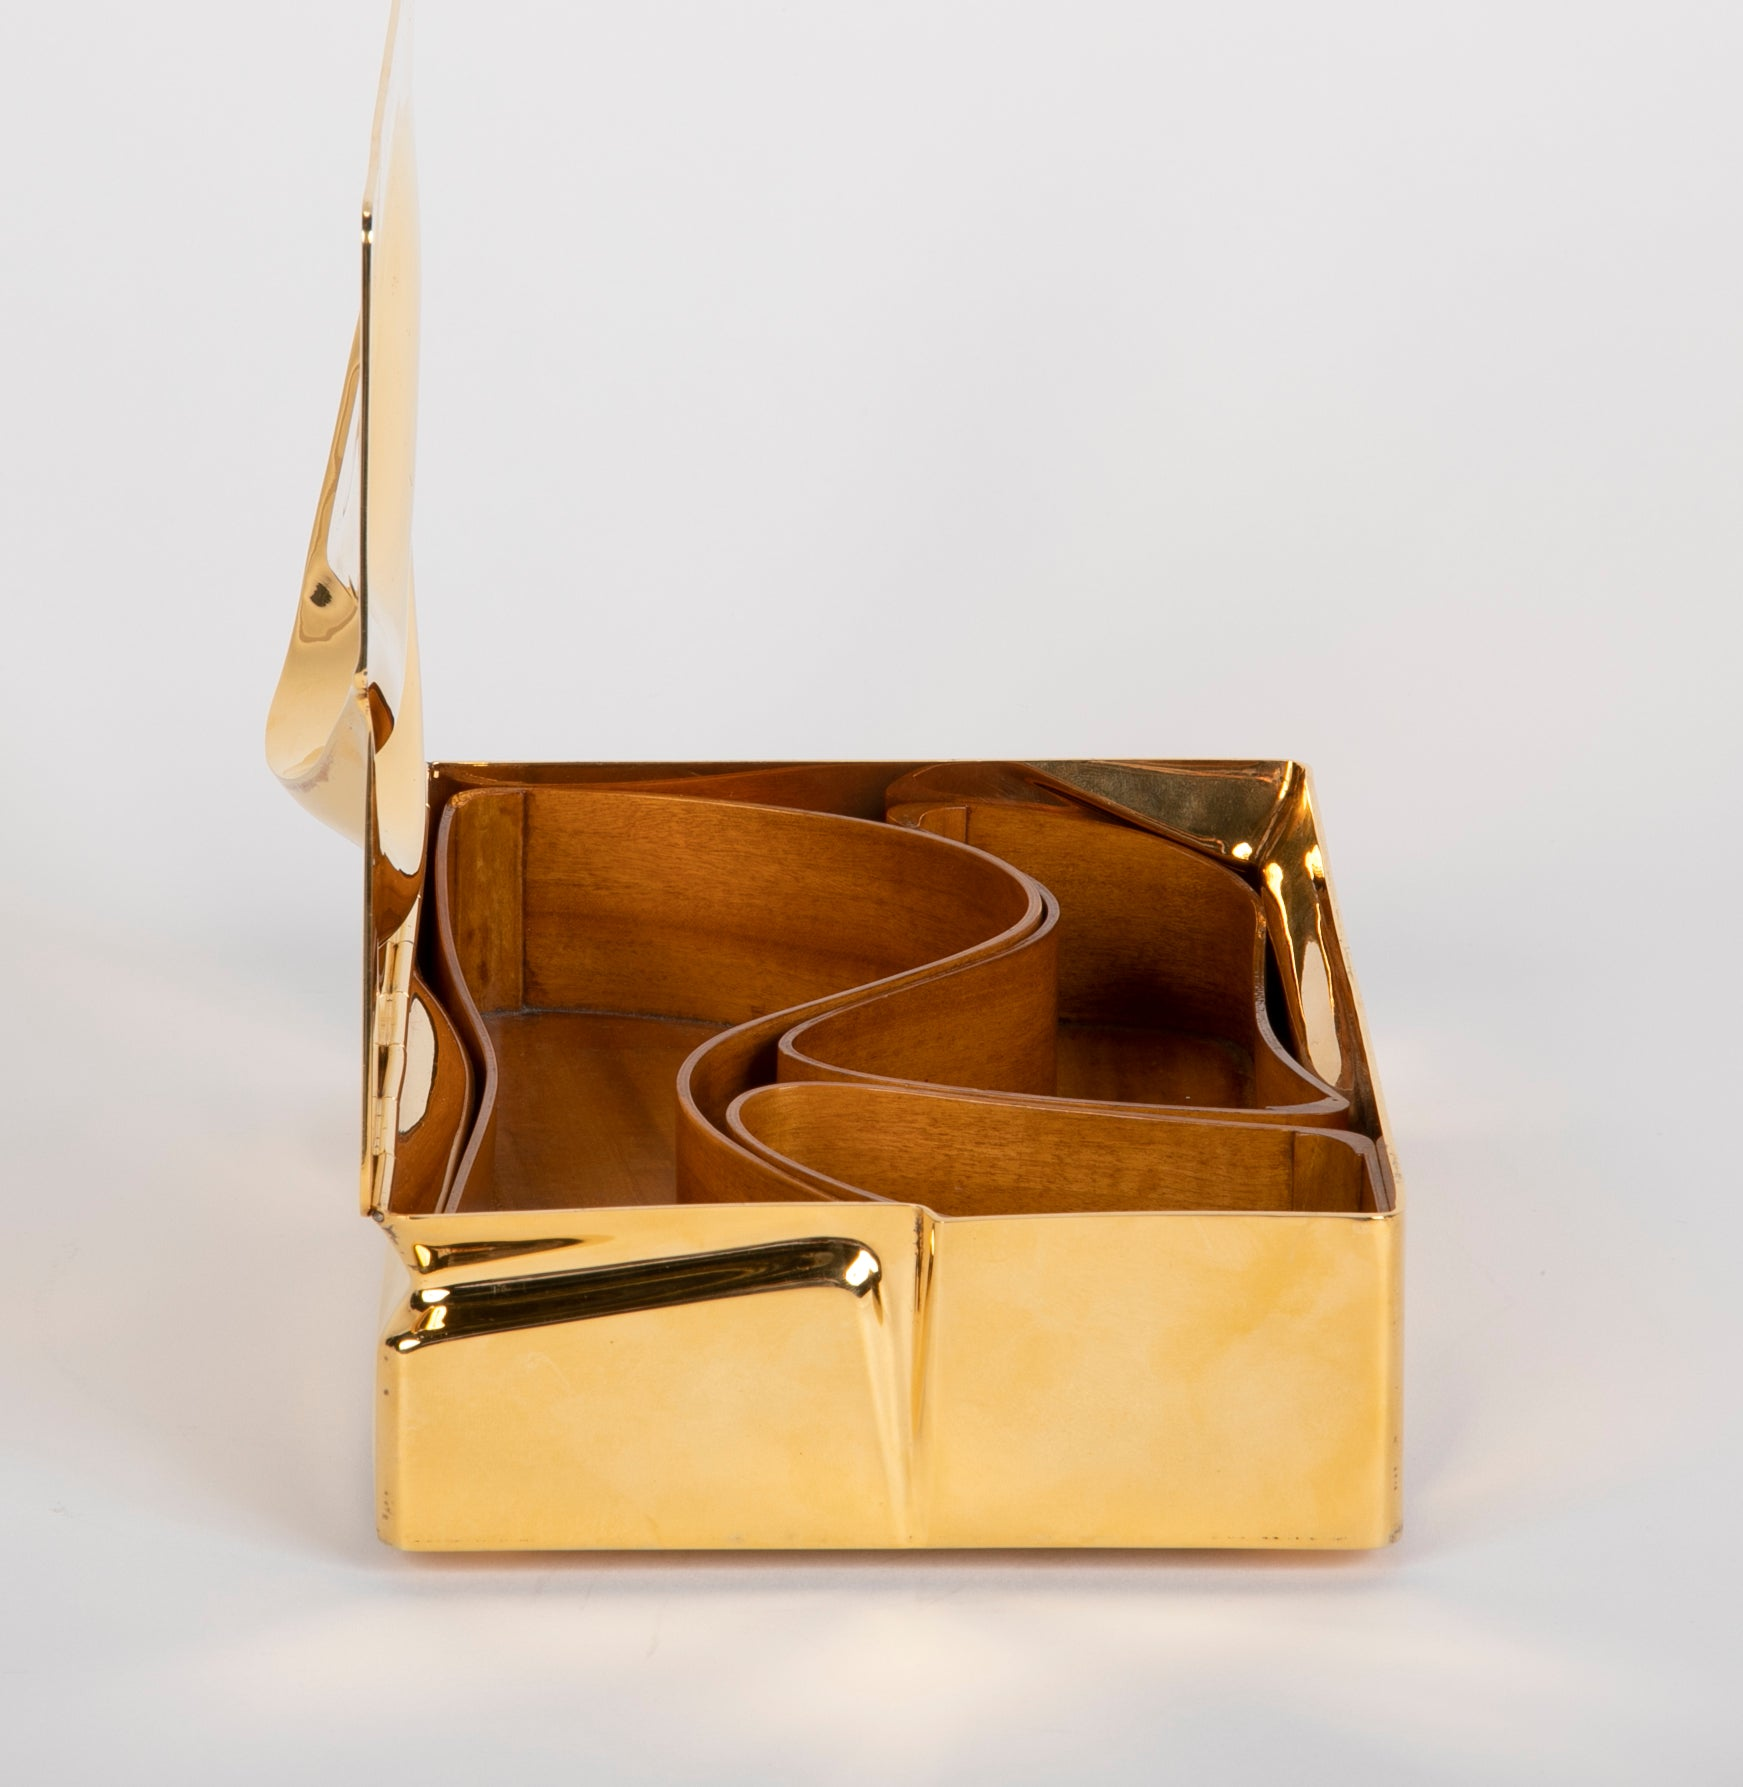 Mnemos 02 Jewelry Box by Asymptote for Meta